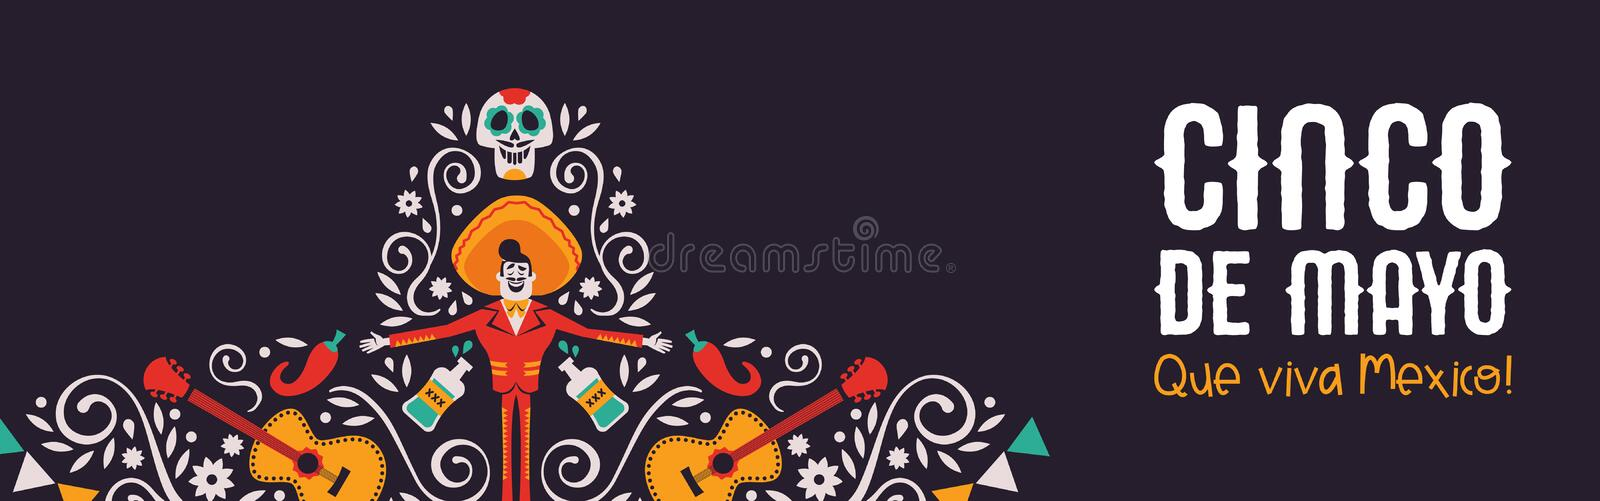 Cinco de Mayo mariachi hat banner of culture icons. Happy Cinco de Mayo web banner illustration for mexico independence celebration. Big mexican hat with vector illustration